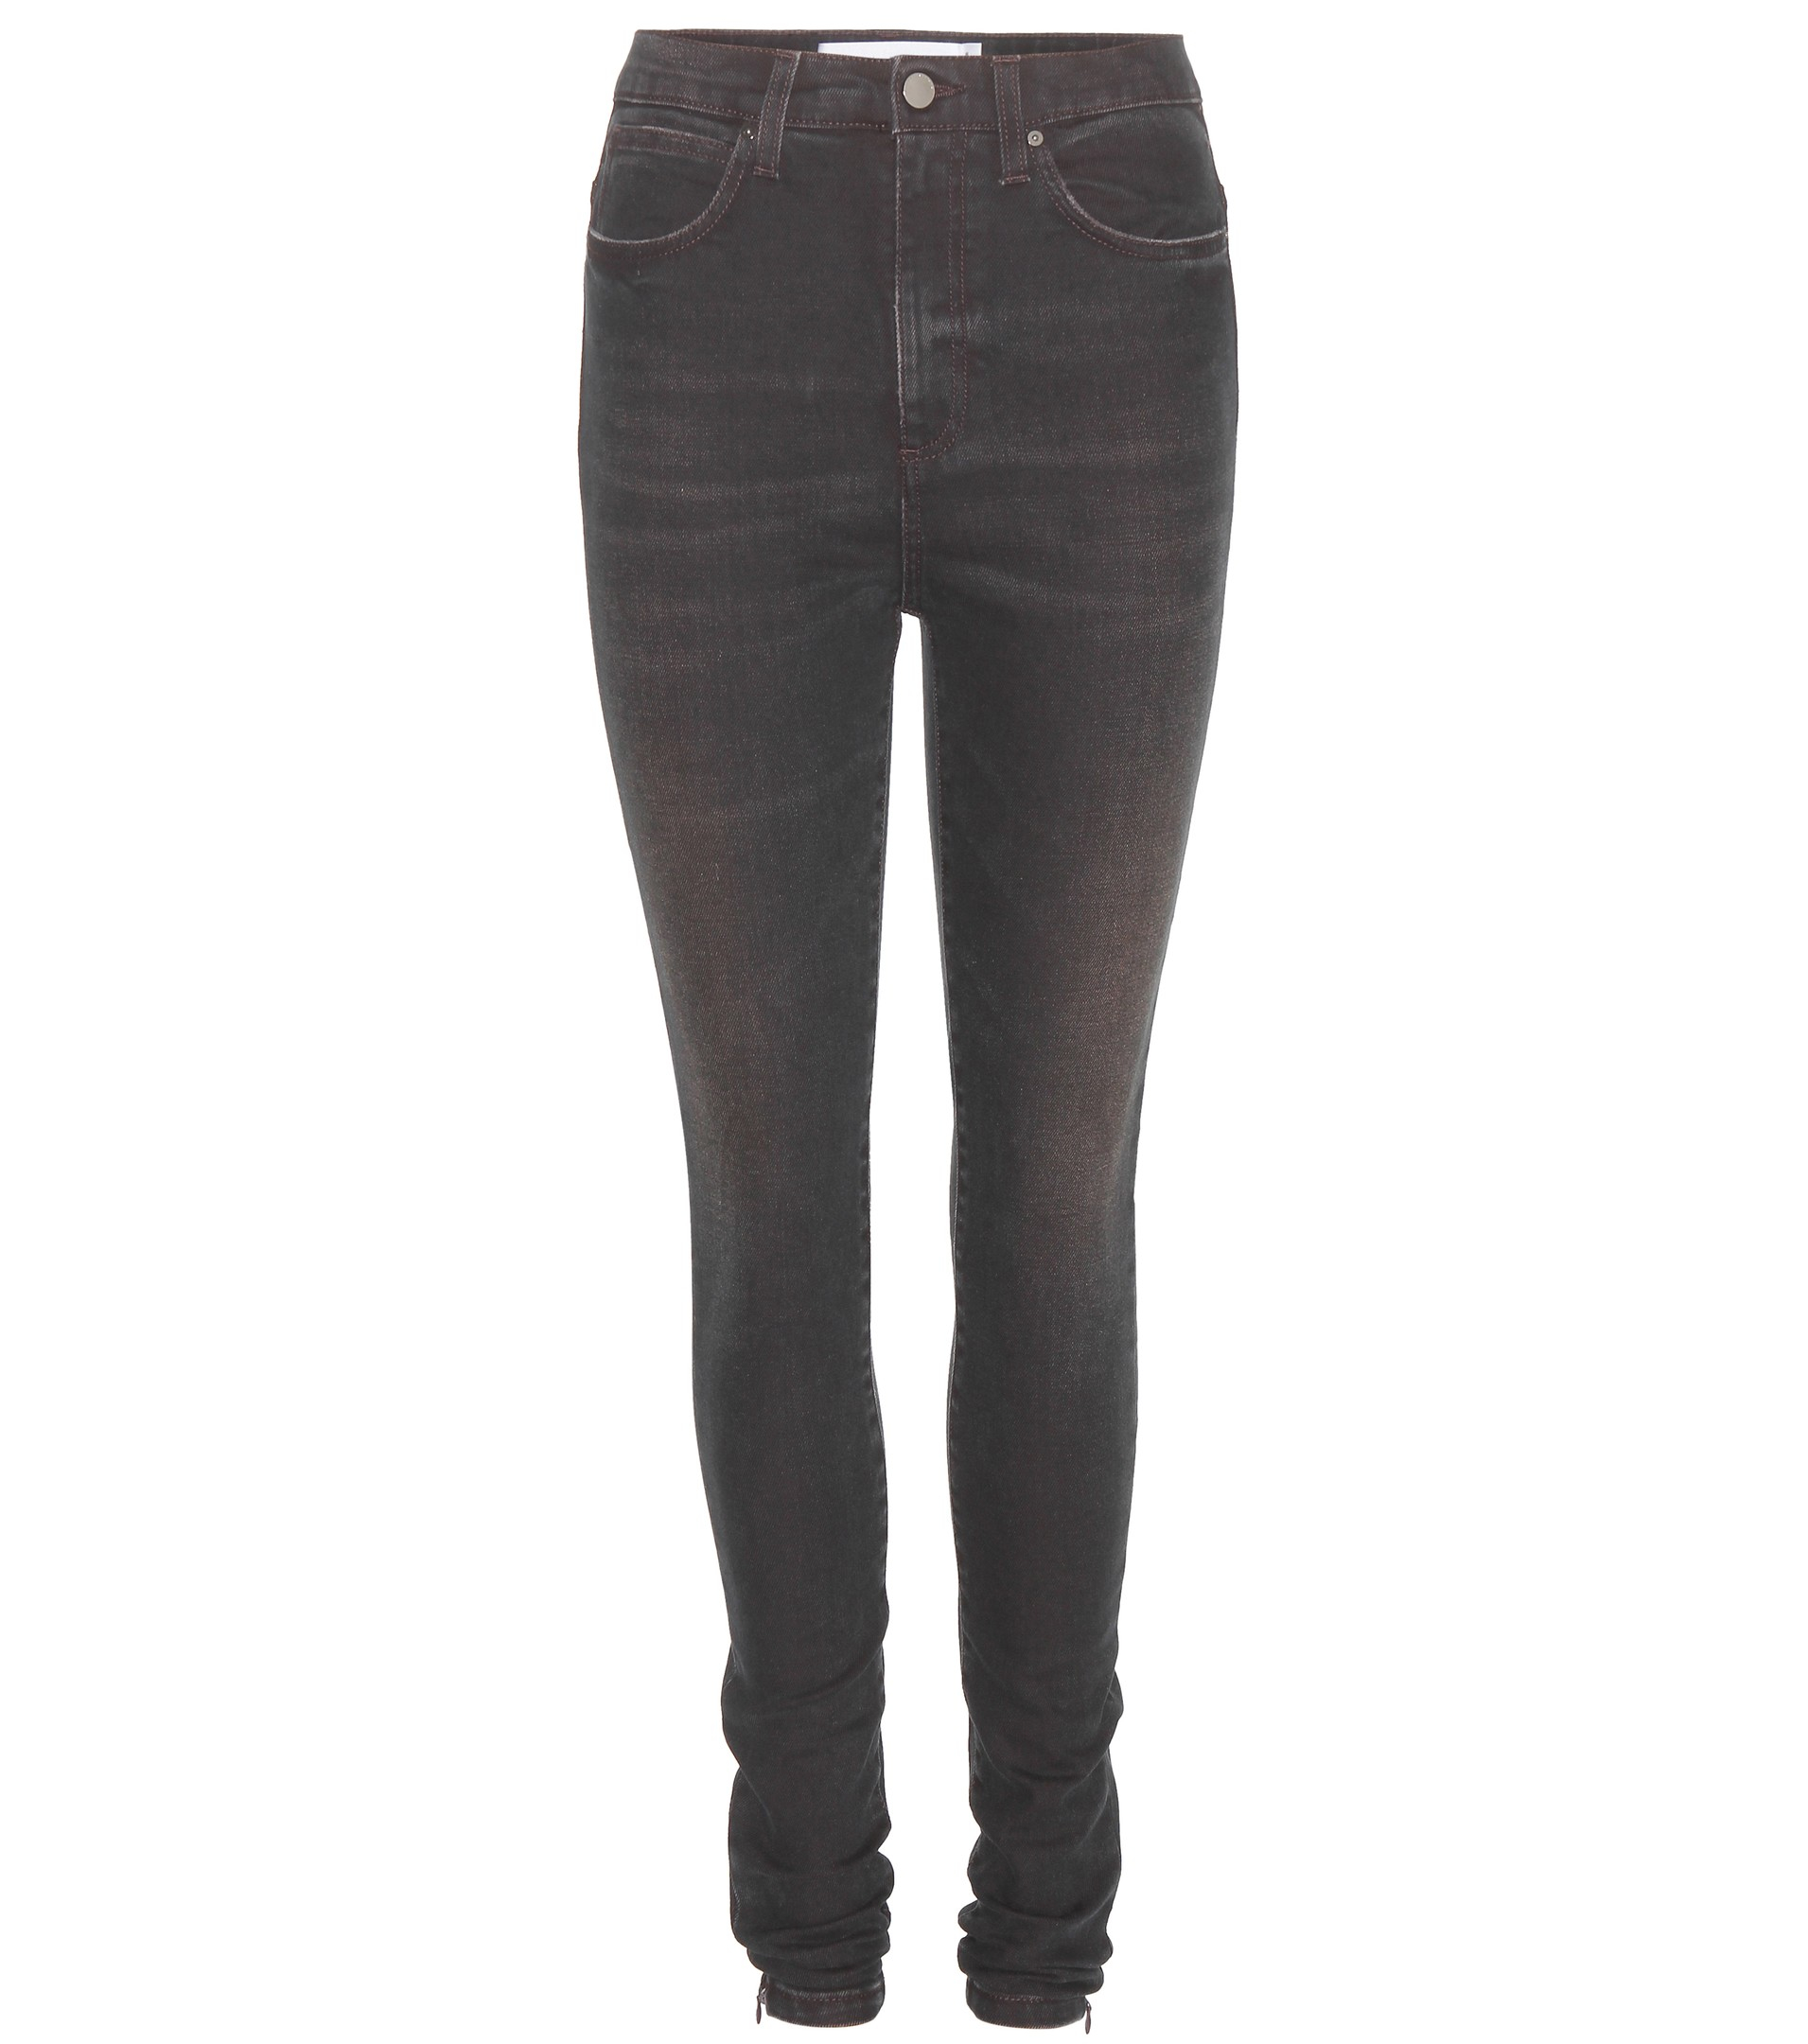 Dark Brown Jeans For Women - Xtellar Jeans